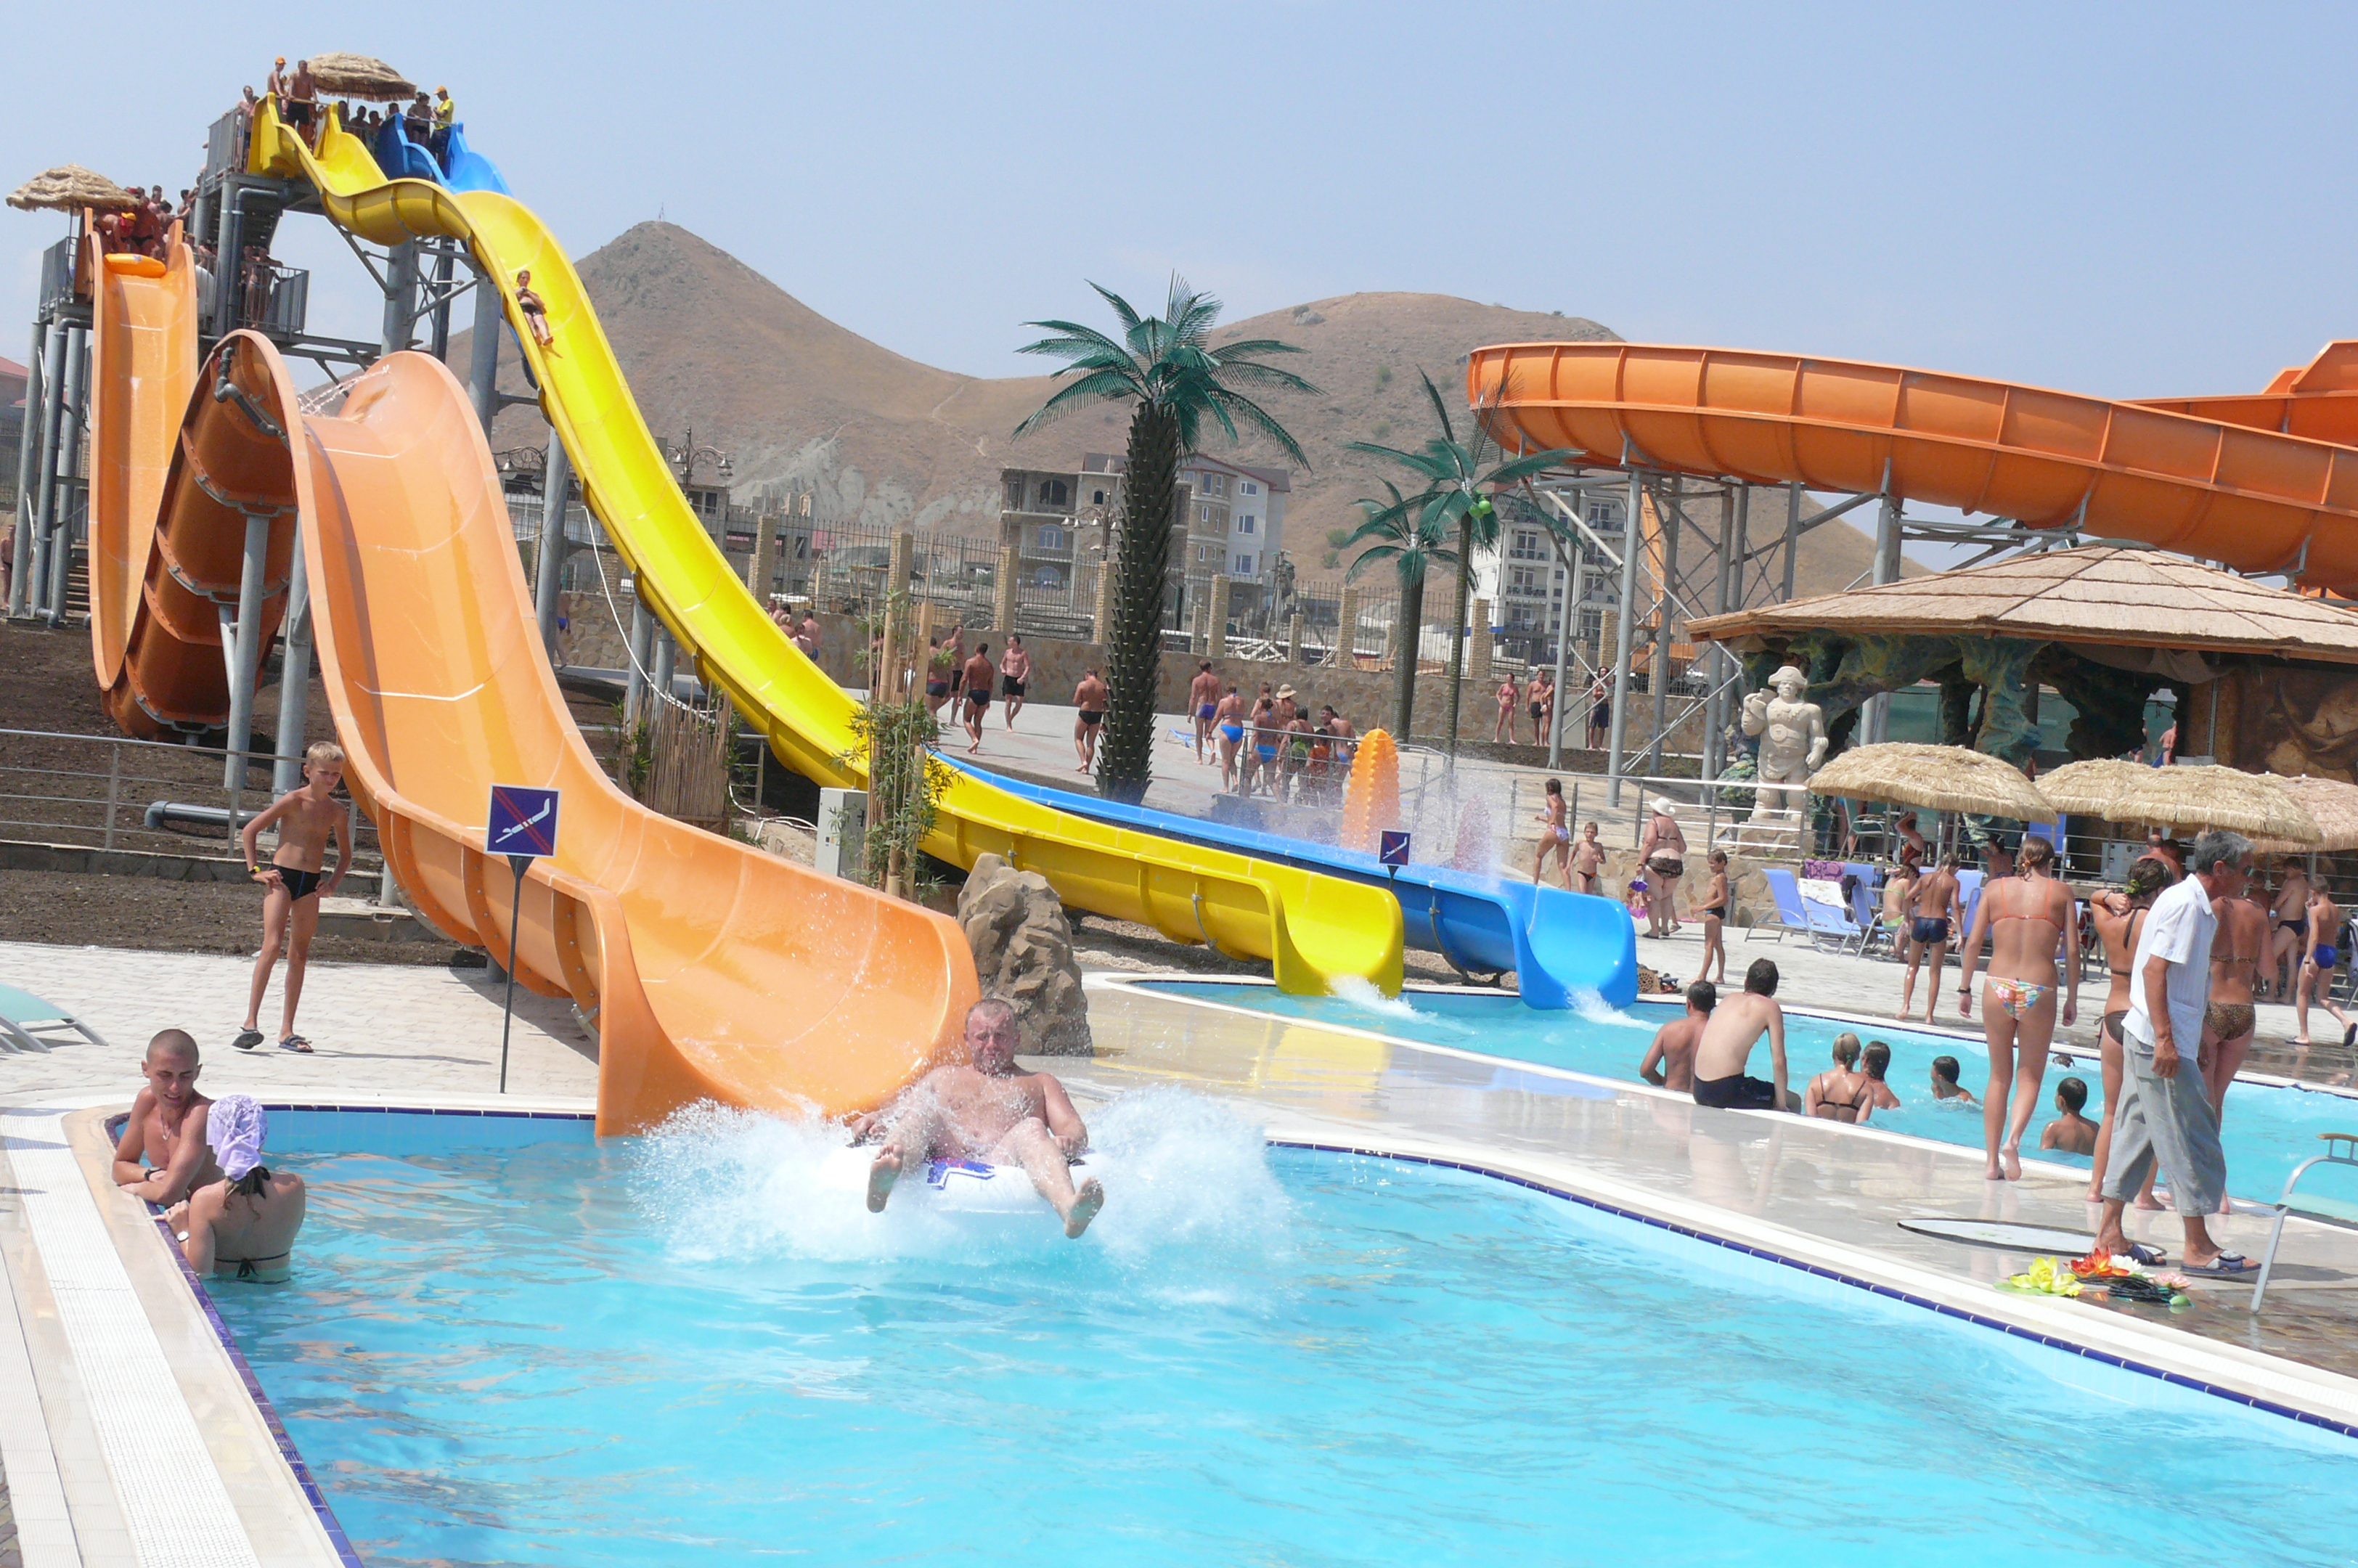 https://aquapark-koktebel.ru/wp-content/uploads/2020/04/Let-vverh-lodka.jpg